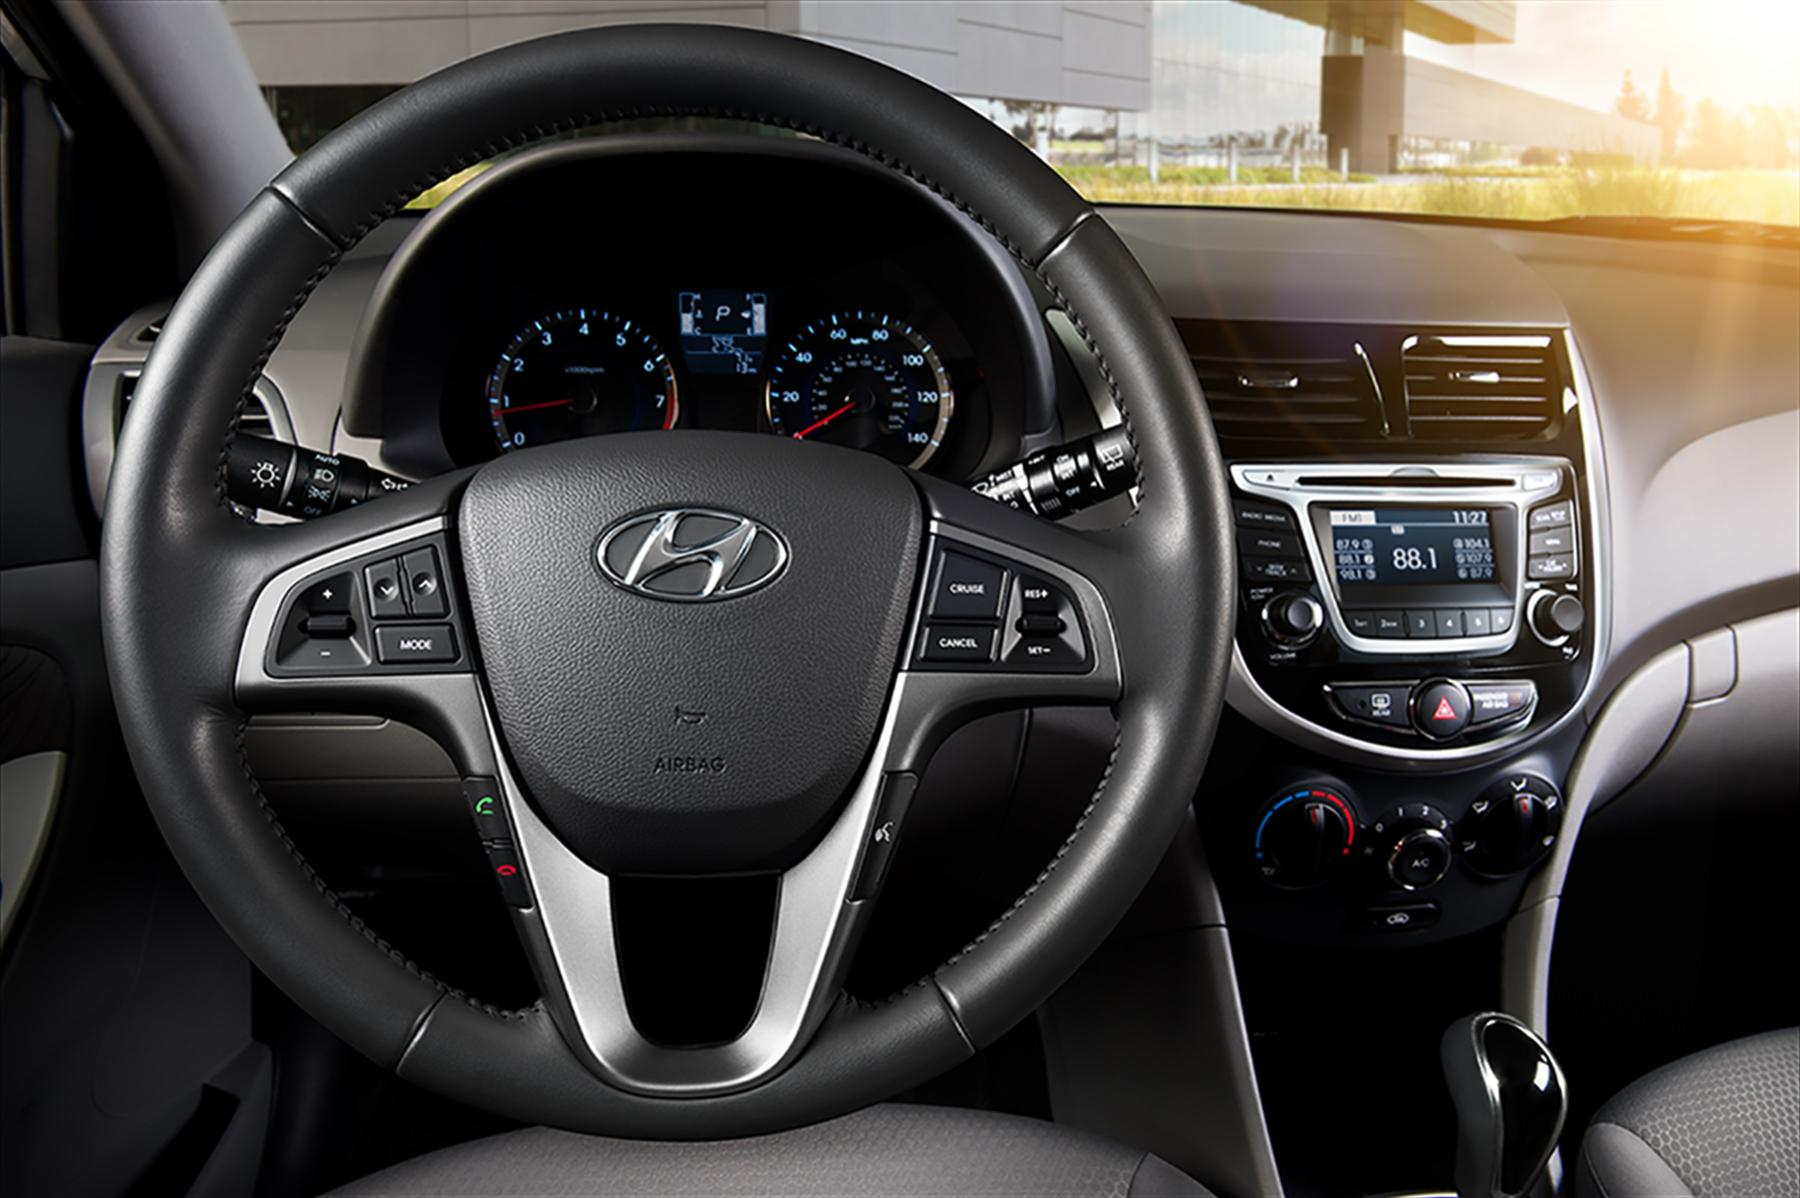 eastside hyundai news in while stay infotainment bluetooth driving a touch zimbrick with accent